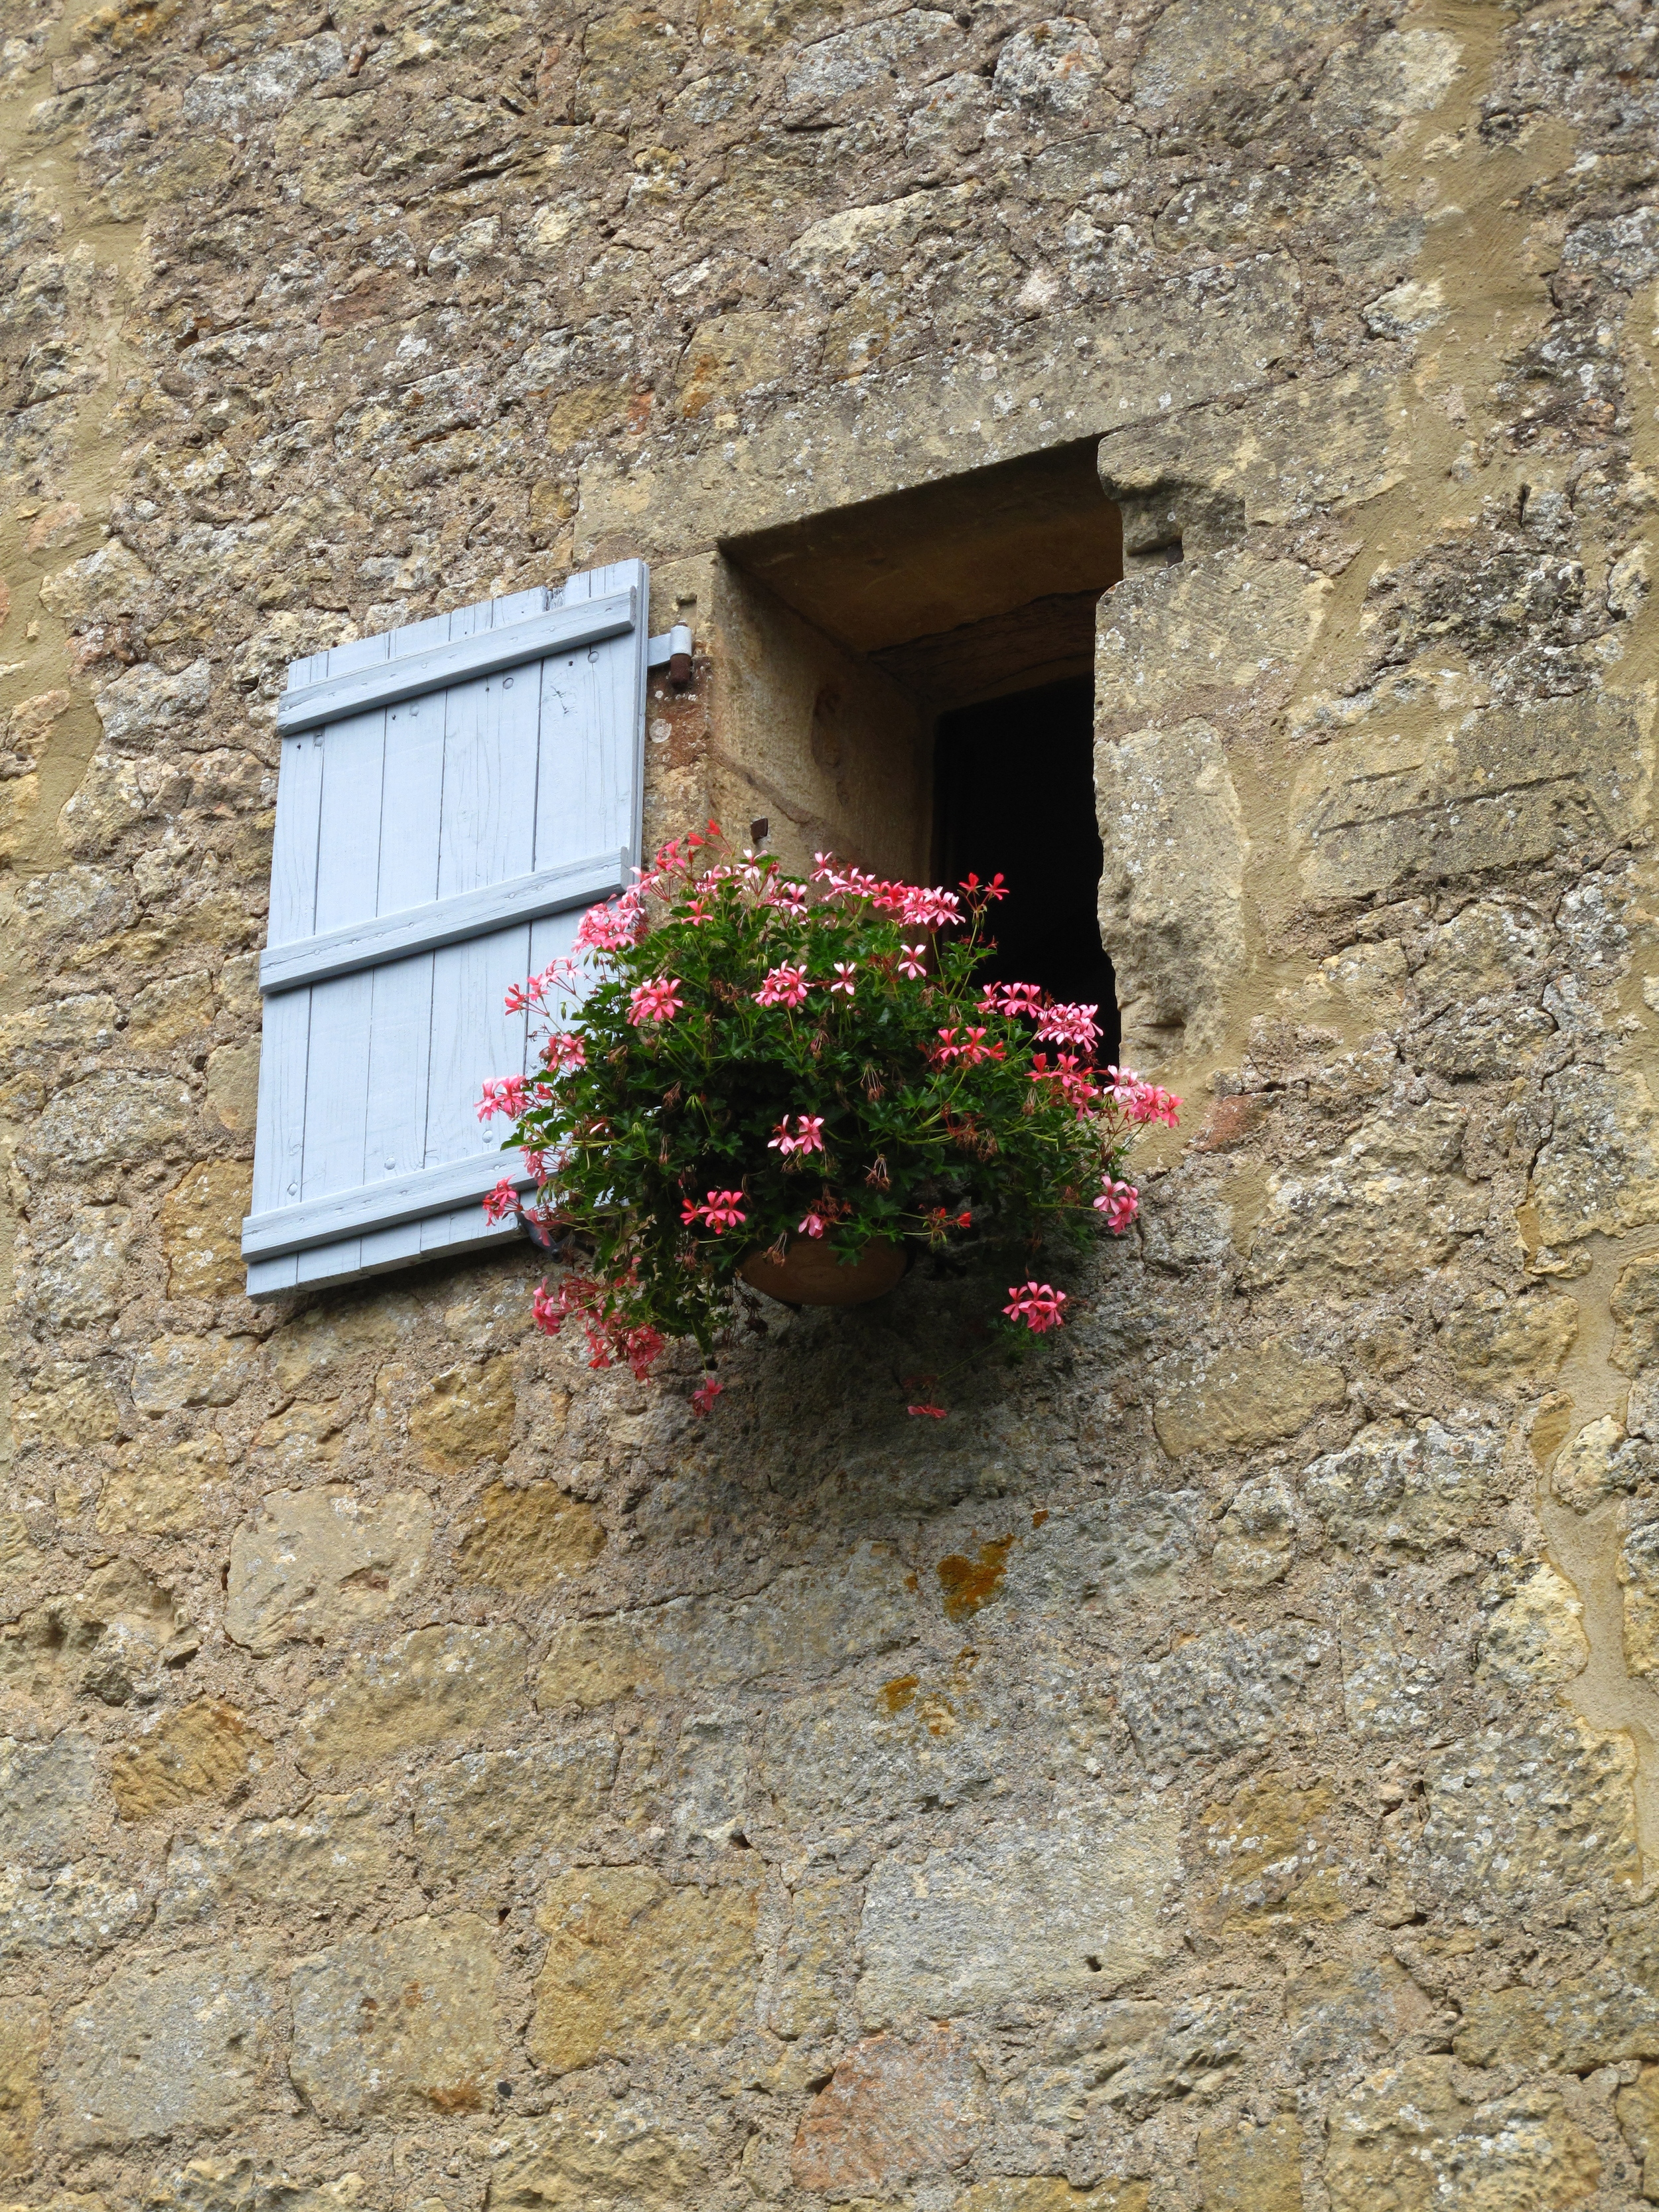 Tiny window and flower box on a stone wall, Dordogne houses.